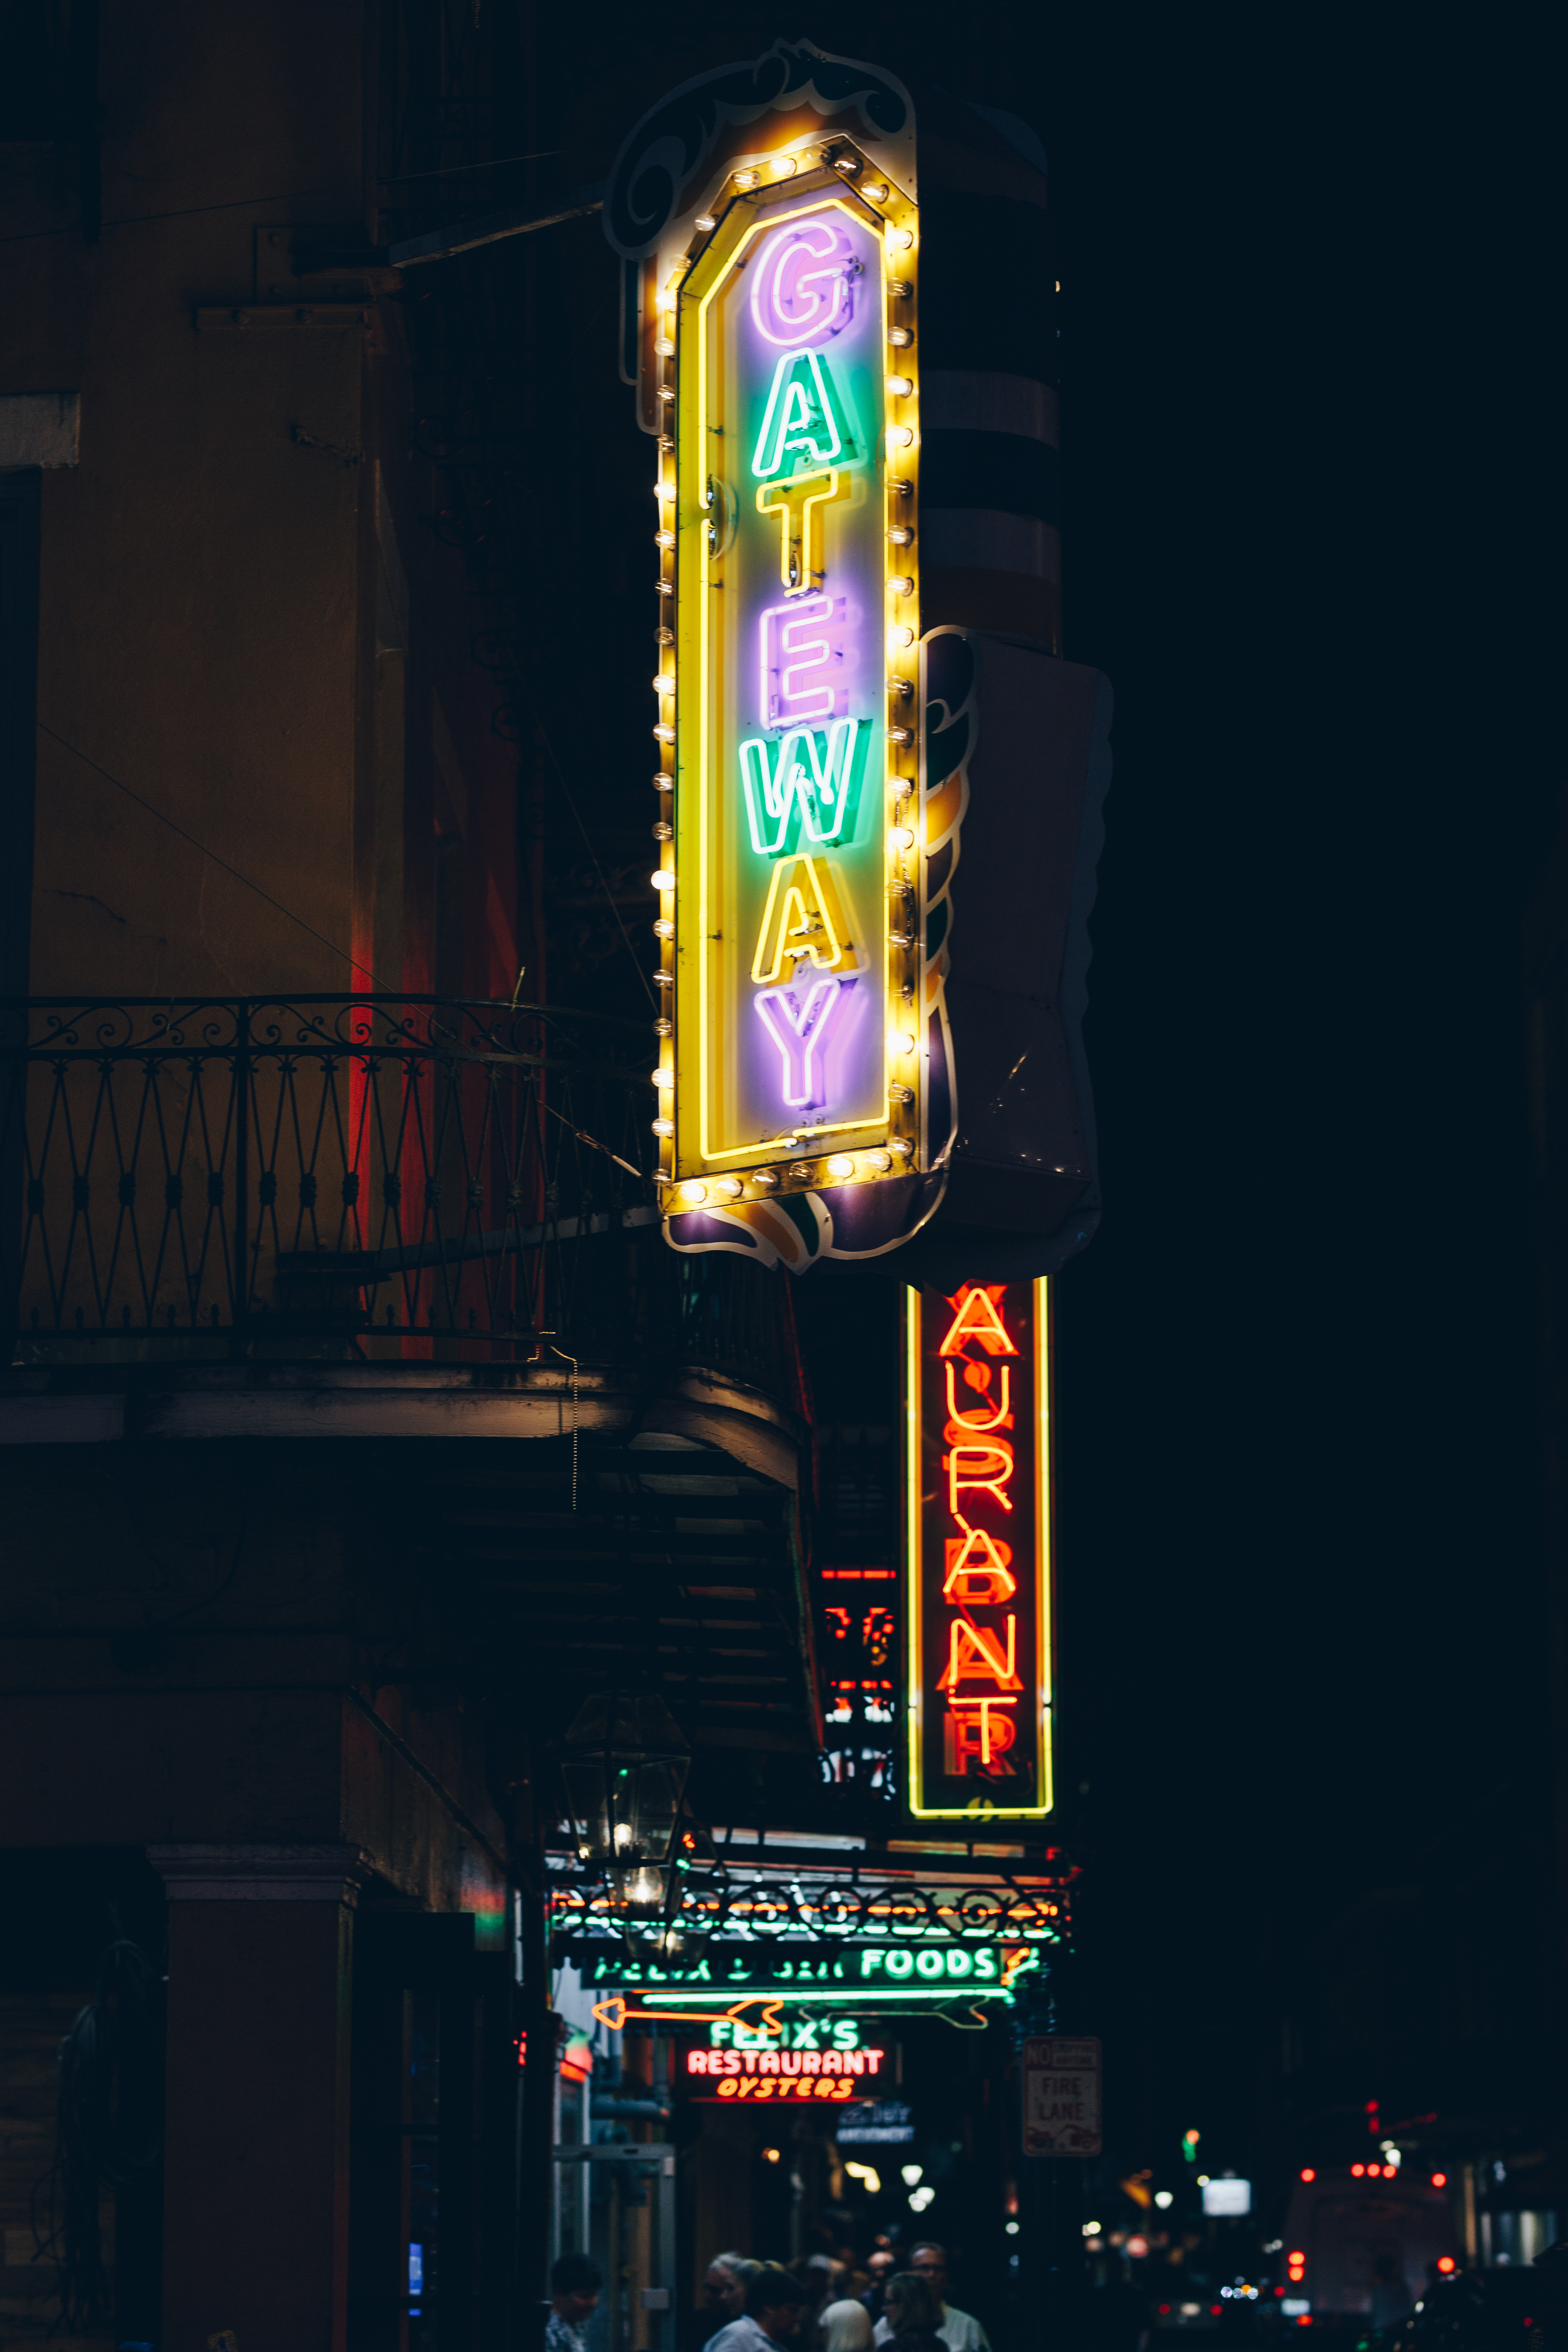 Wing_Hei_Emily_Cheng_Assignment_3_Travel_Photography_New_Orleans_Neon_Lights-6